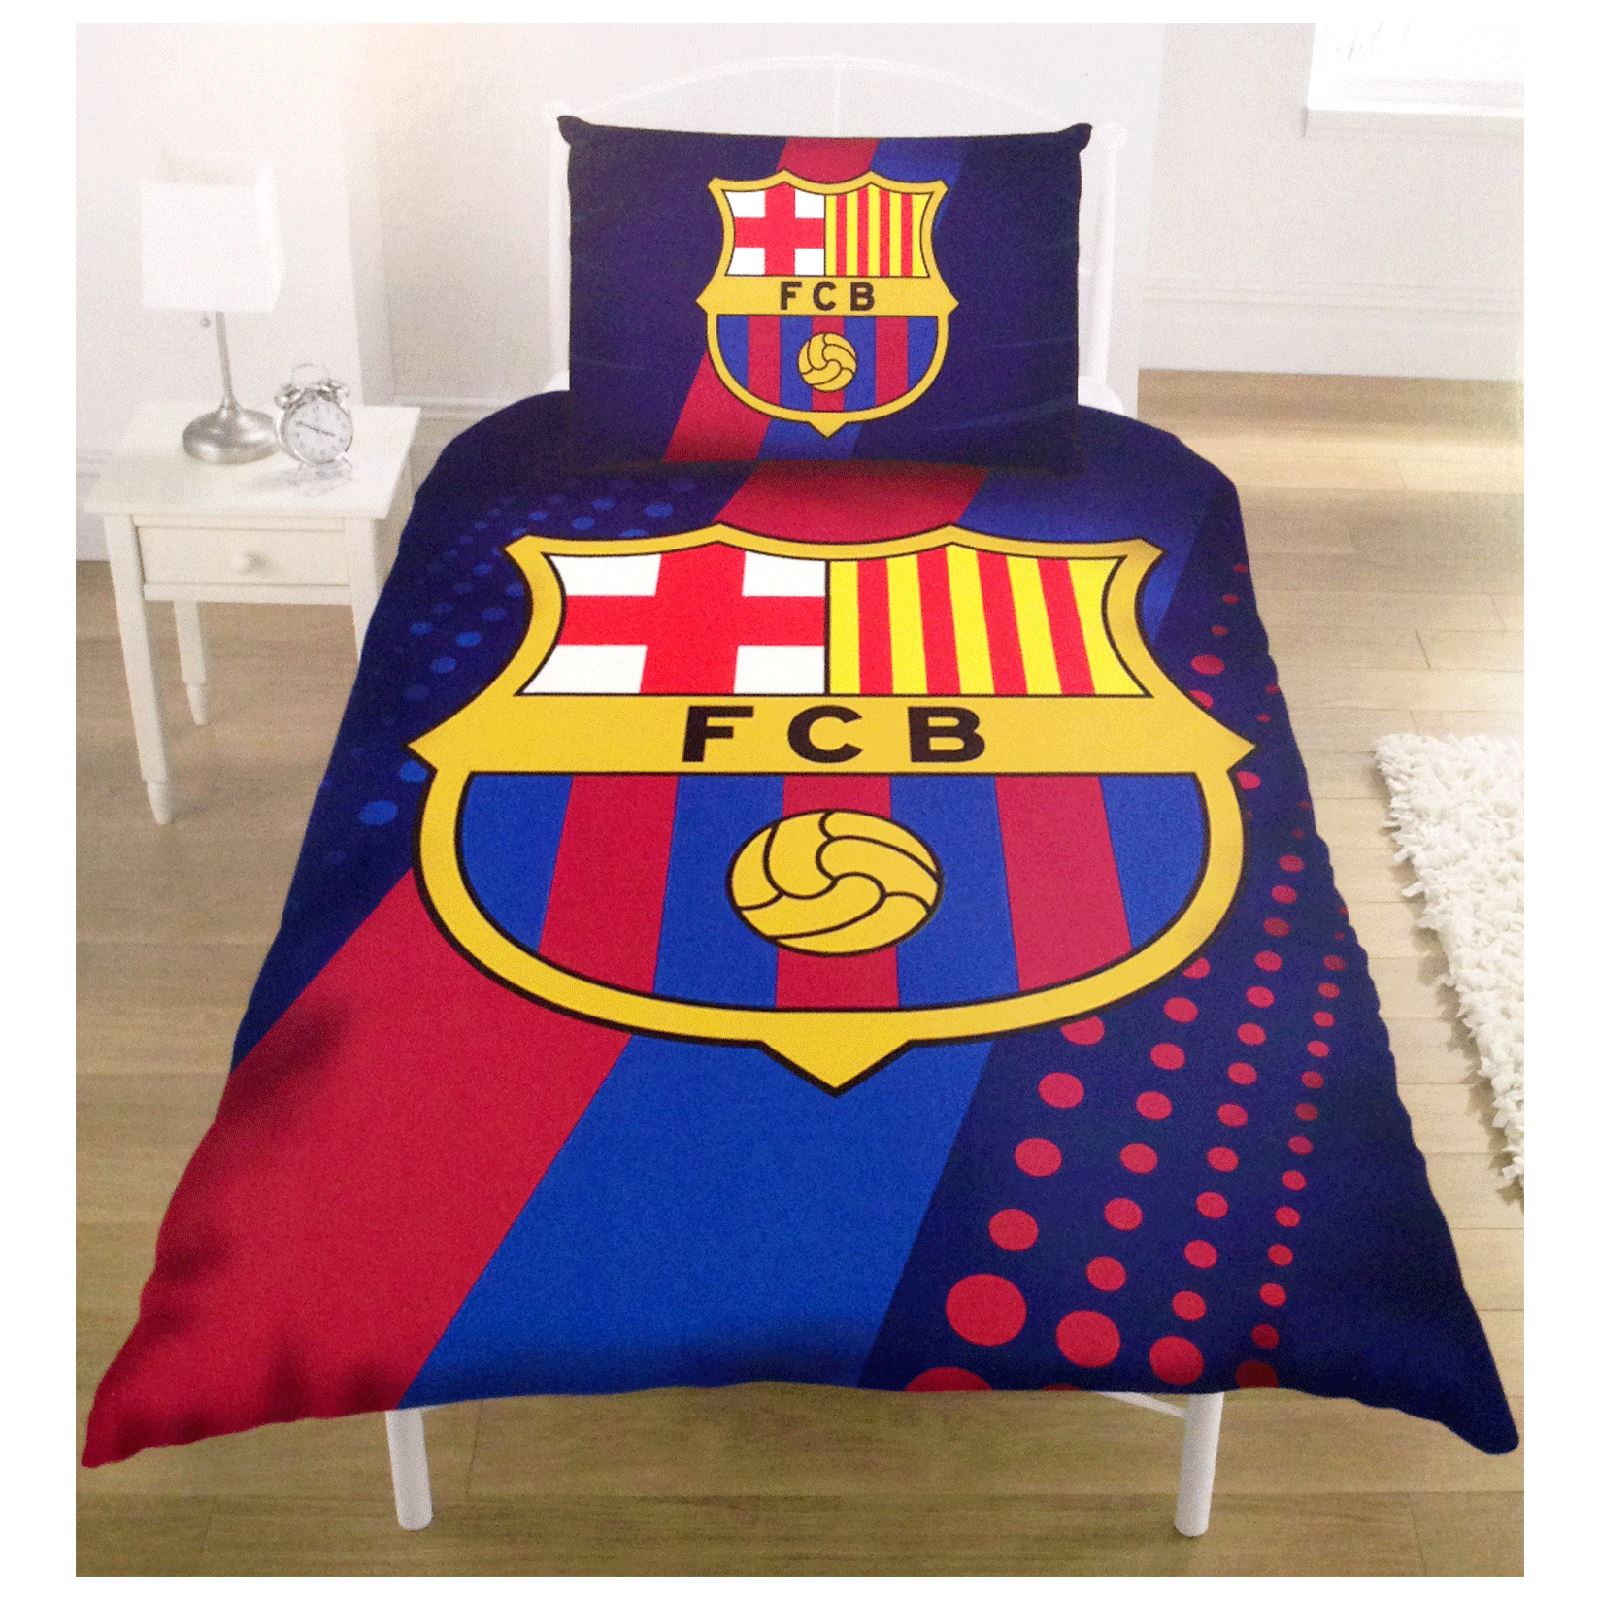 OFFICIAL FOOTBALL CLUB DUVET COVER SETS CHELSEA MANCHESTER. OFFICIAL FOOTBALL CLUB DUVET COVER SETS   CHELSEA MANCHESTER